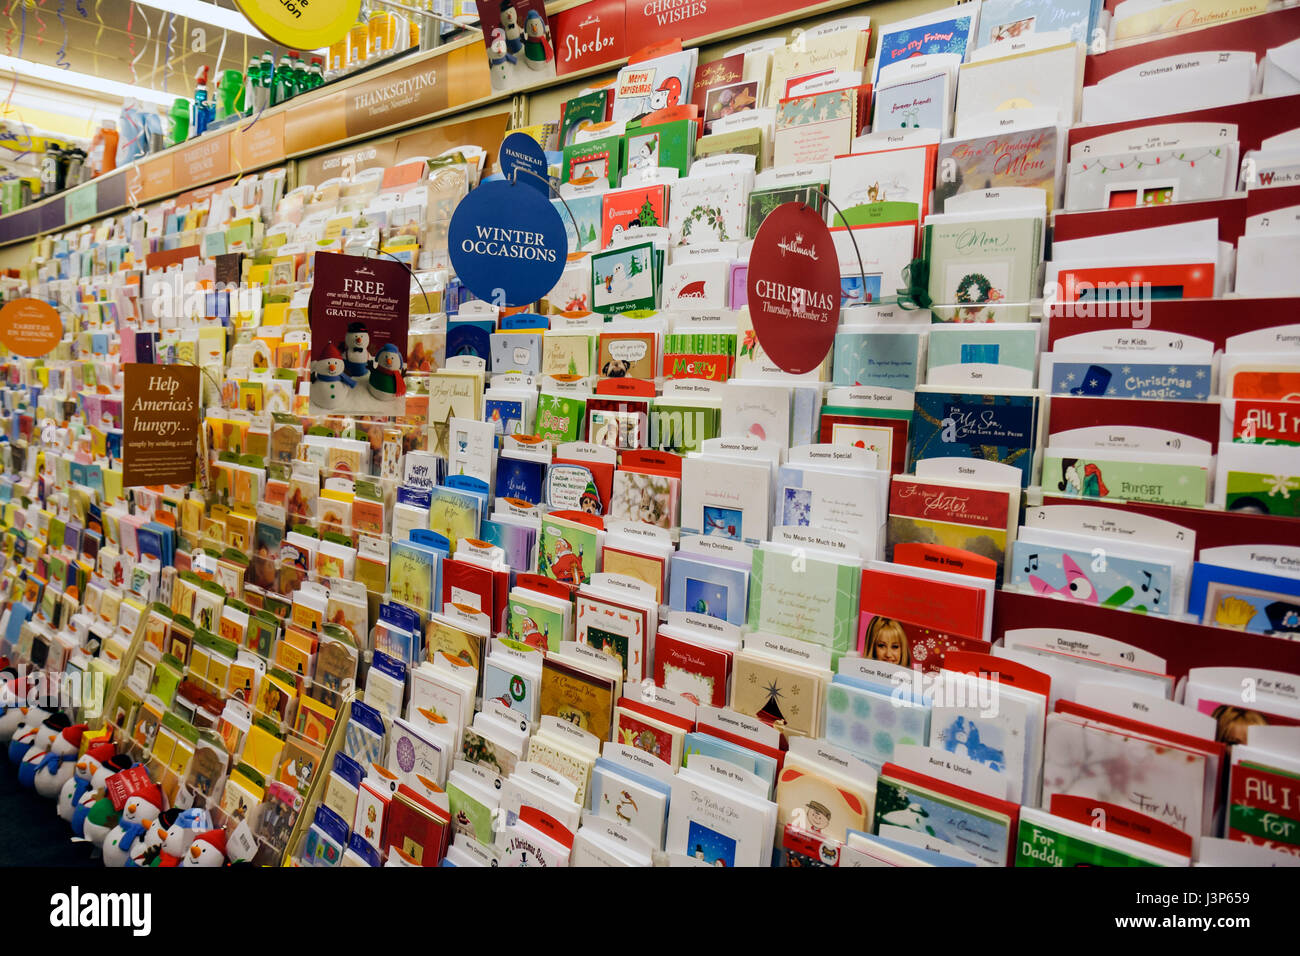 florida miami beach cvs pharmacy stock photos  u0026 florida miami beach cvs pharmacy stock images